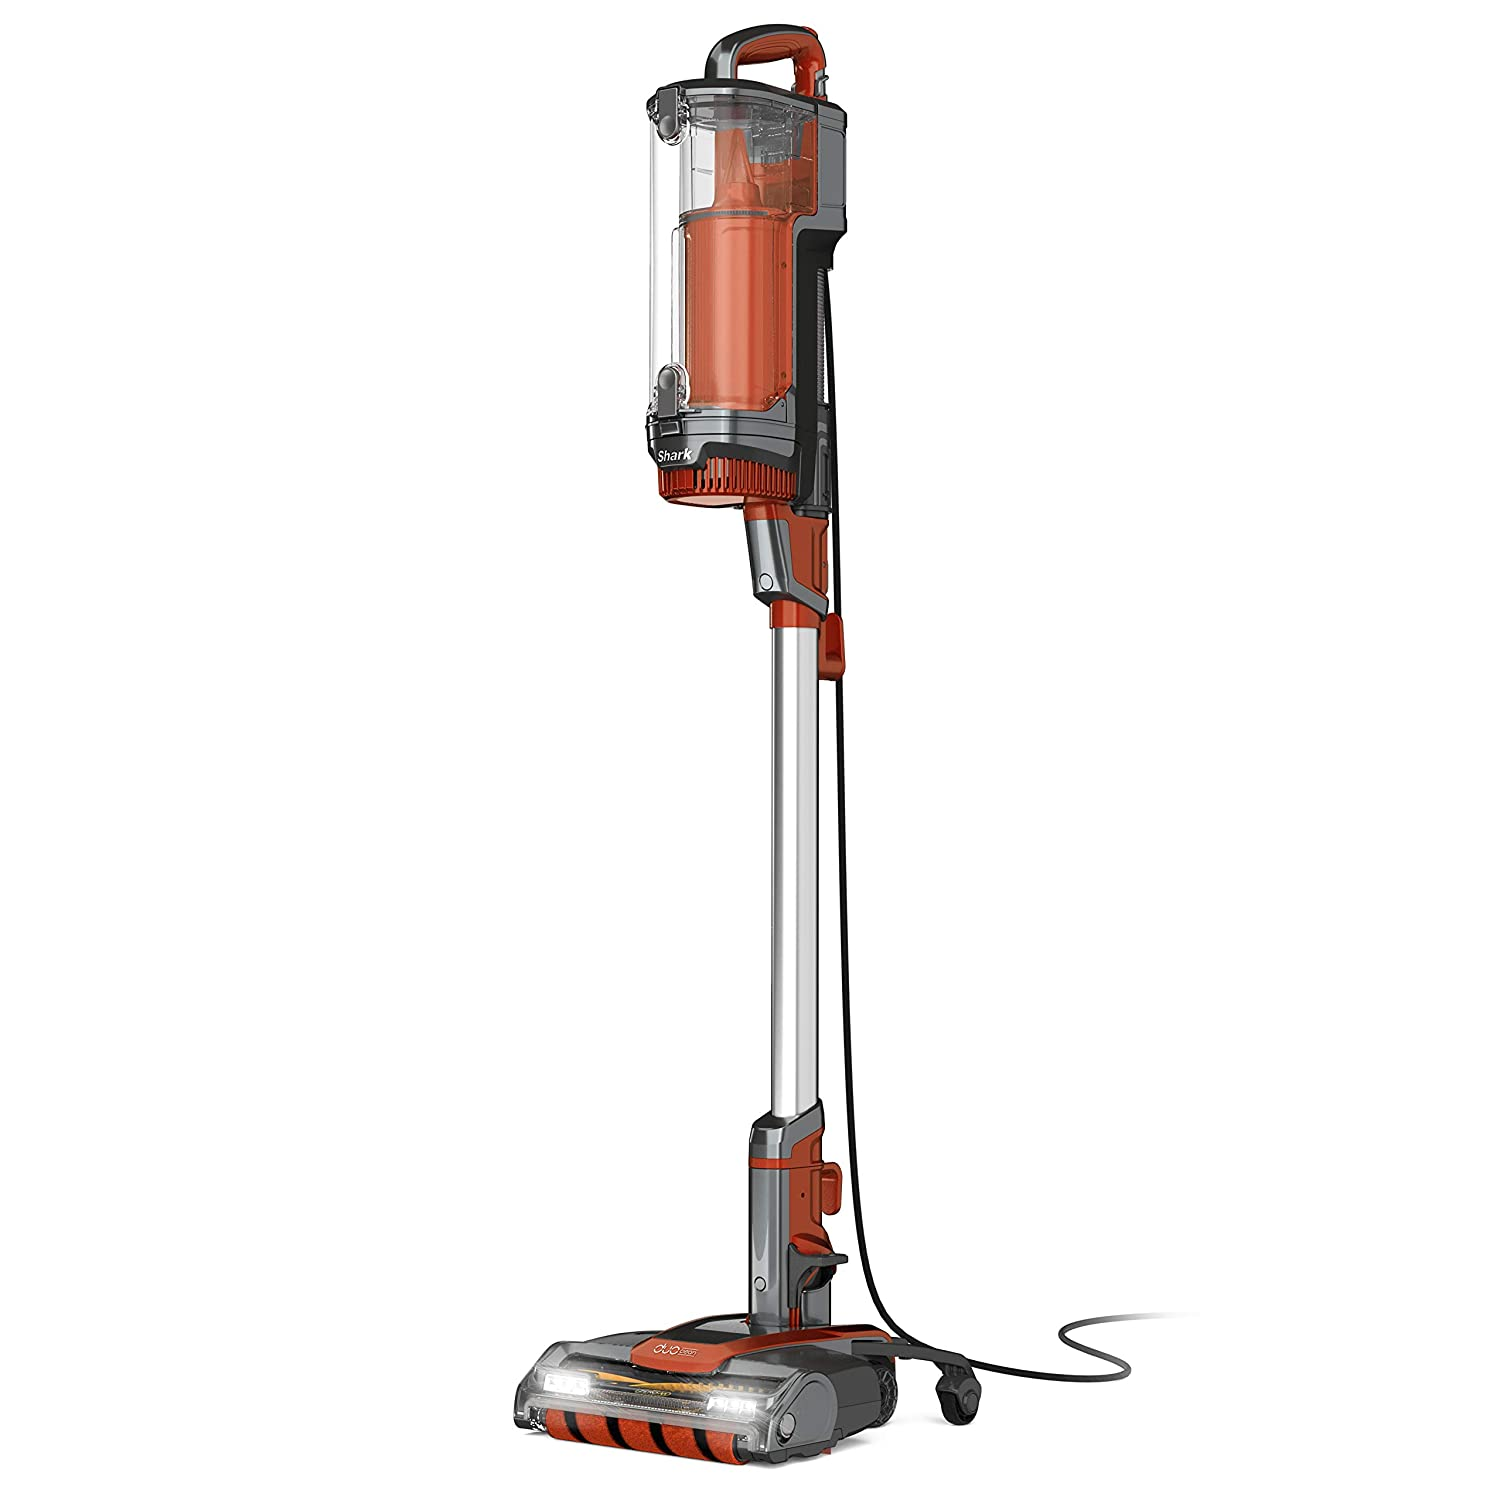 Shark UpLight Upright Vacuum, Terracotta